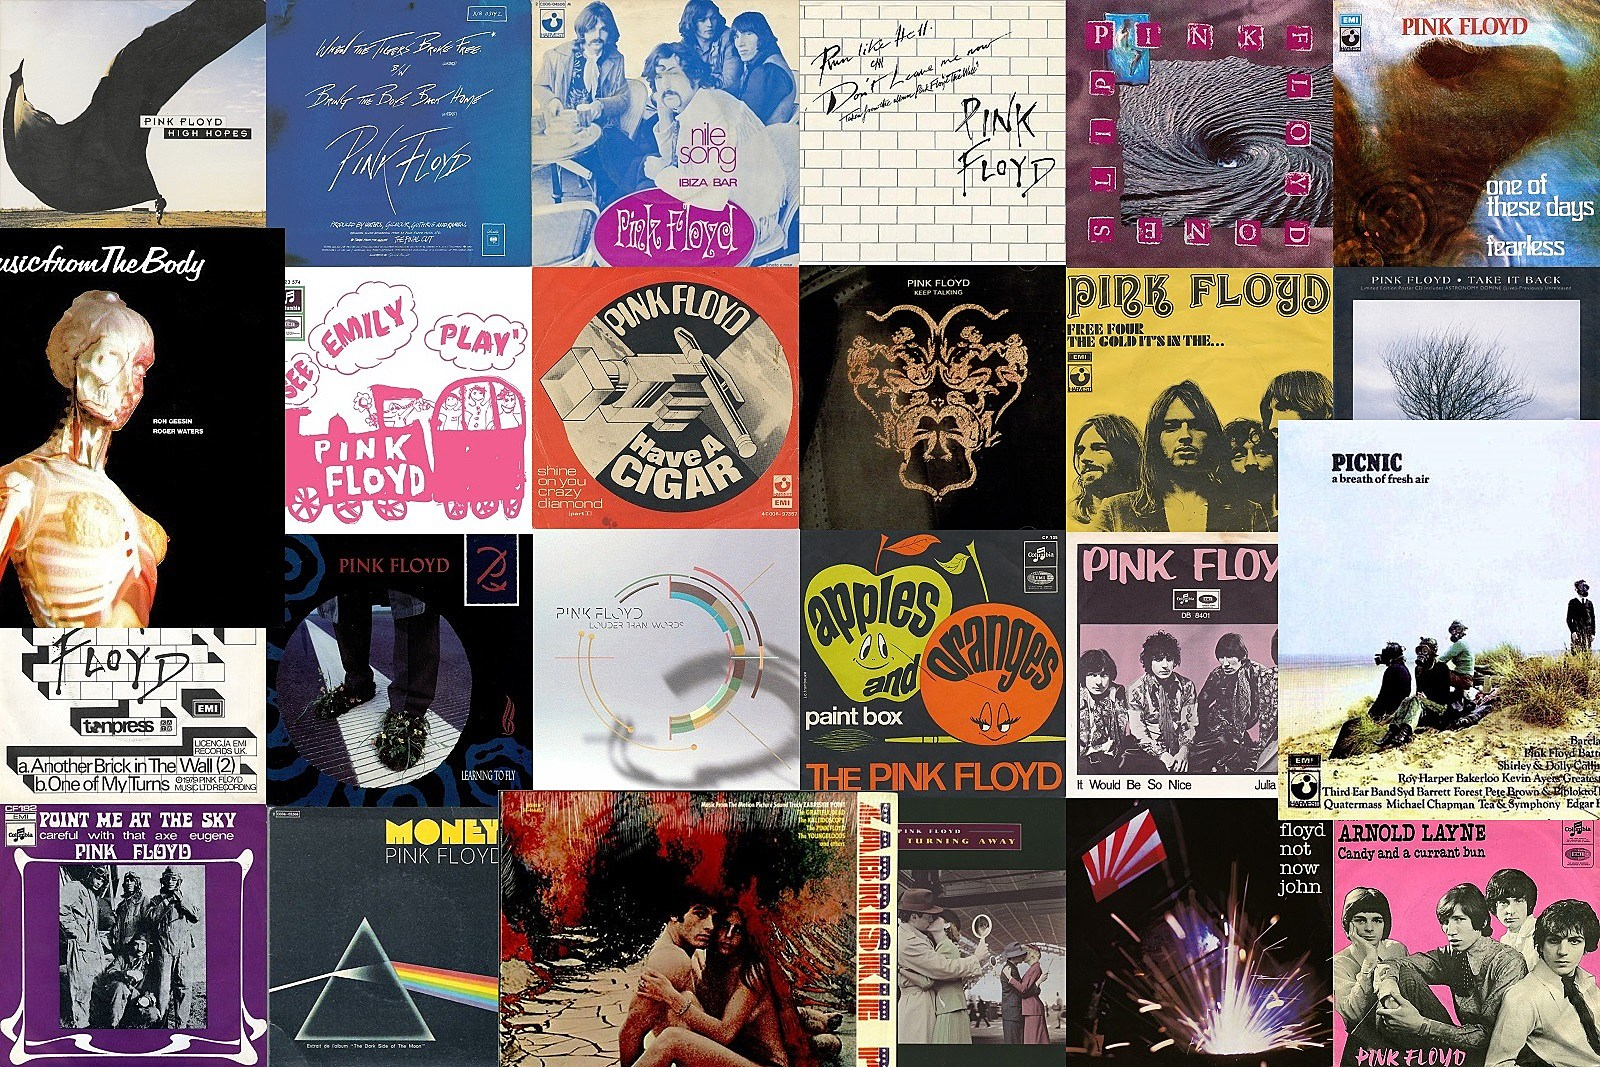 a3562f63de All 167 Pink Floyd Songs Ranked Worst to Best